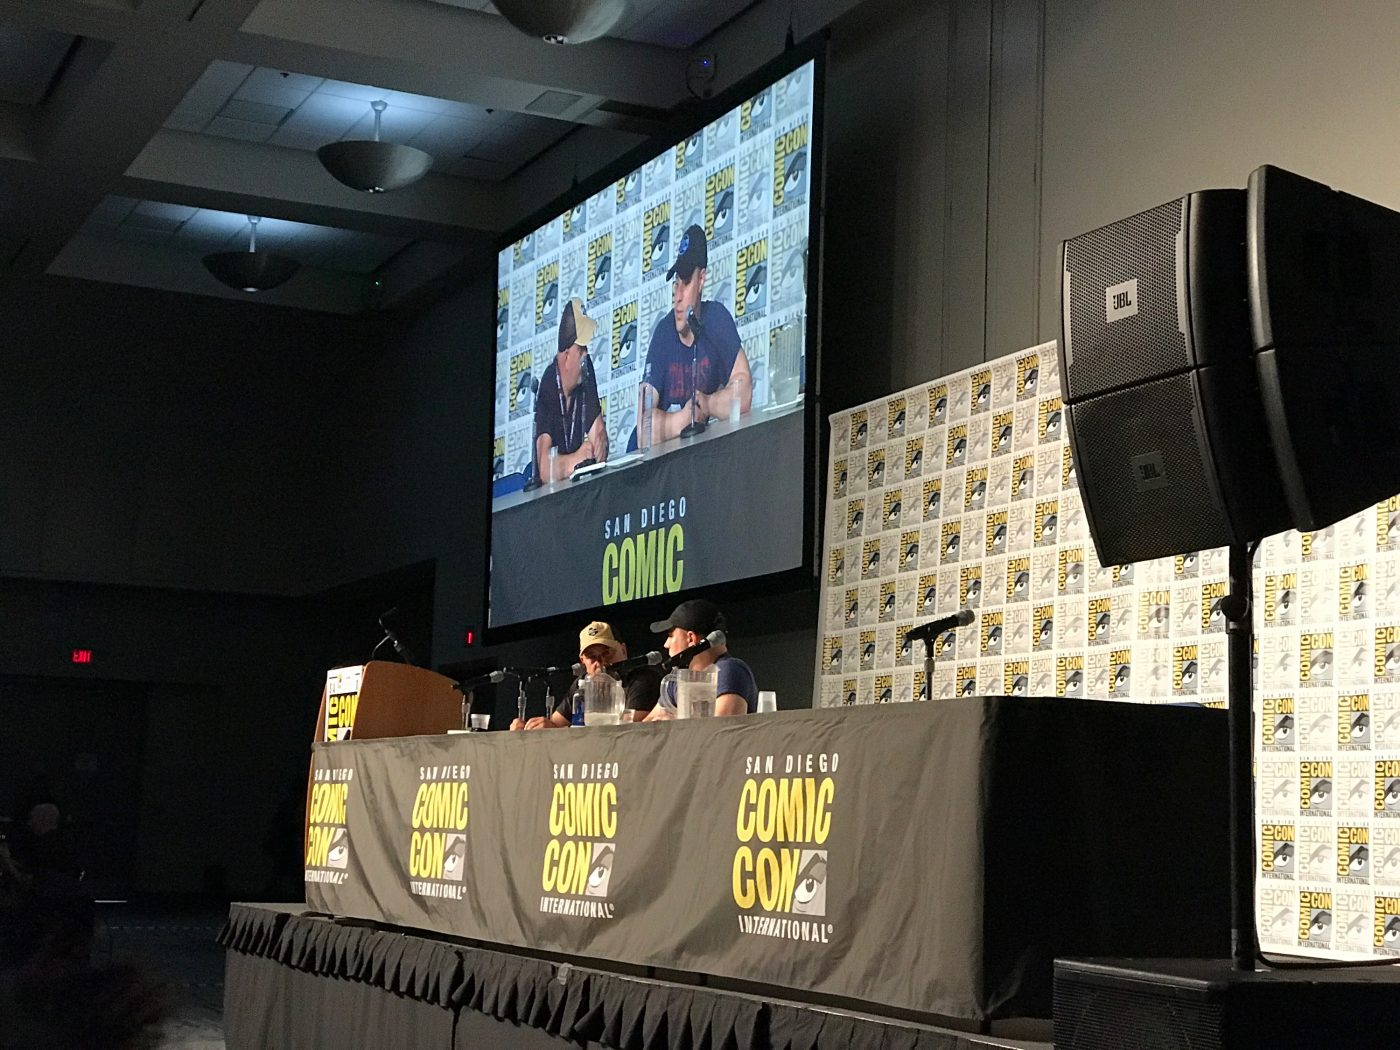 An intimate look at Geoff Johns at SDCC 2017